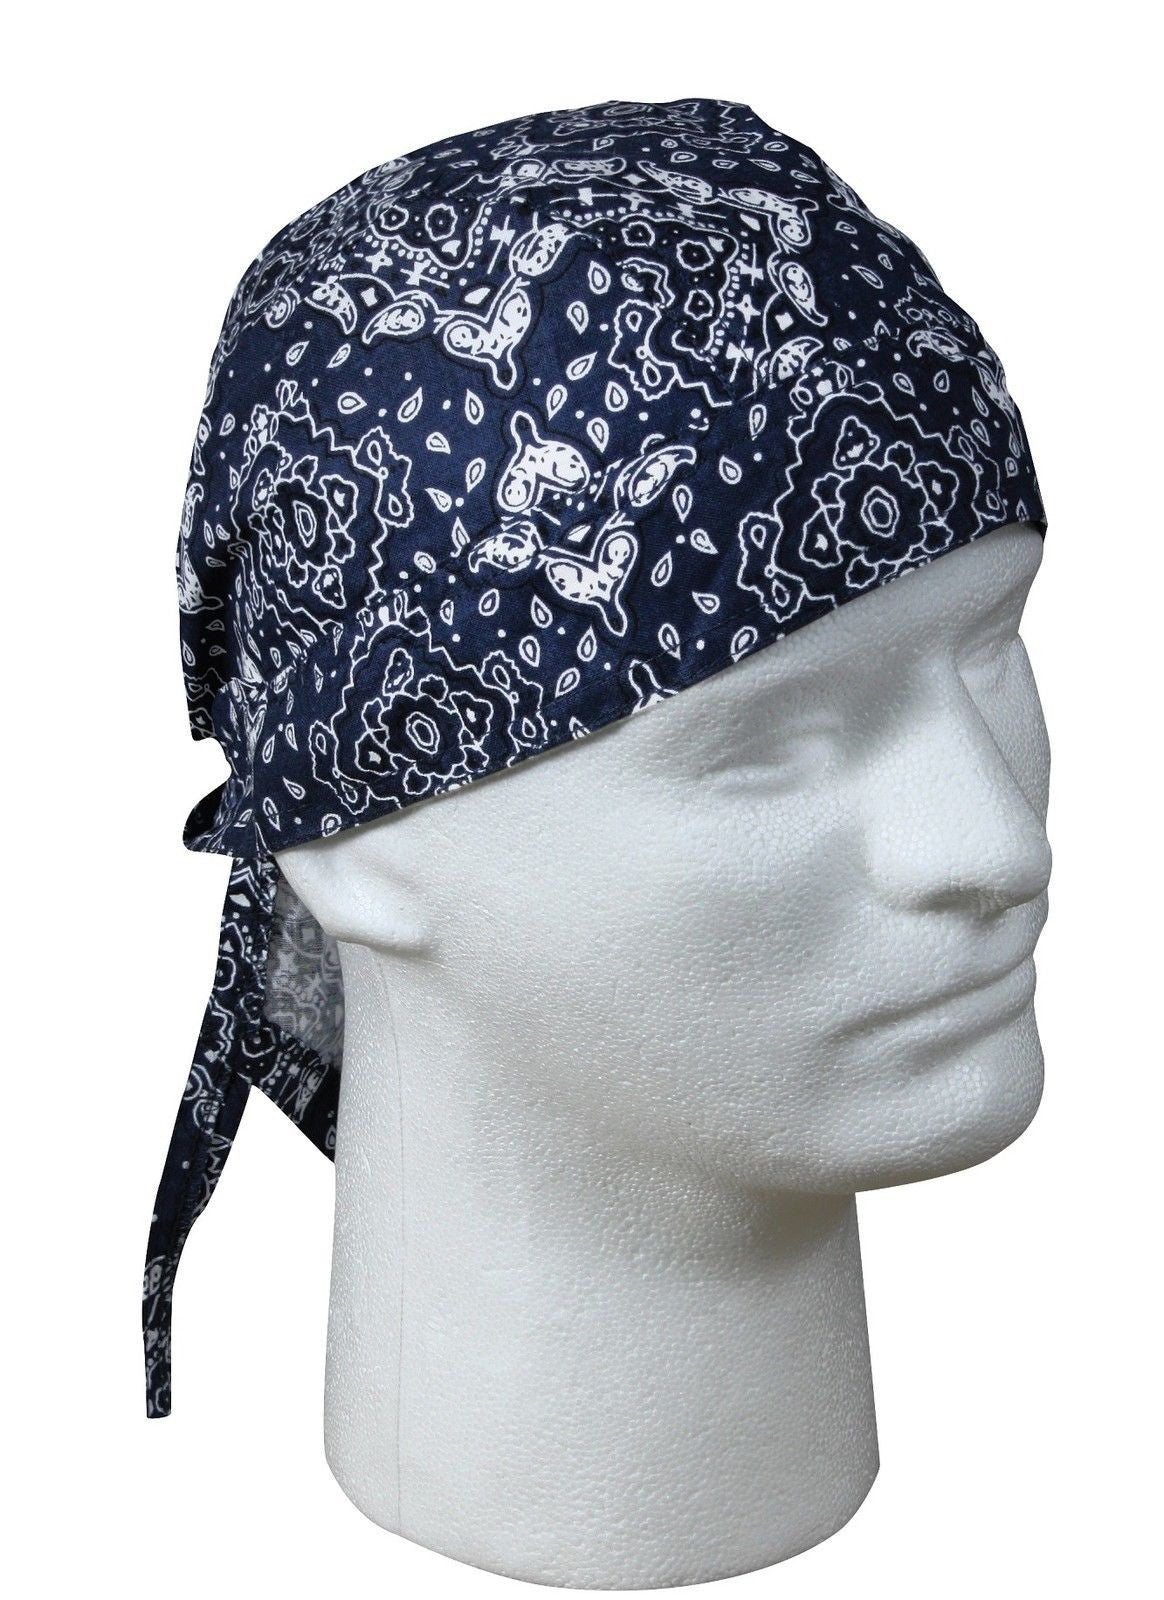 Doo Rag Pattern Custom Design Ideas